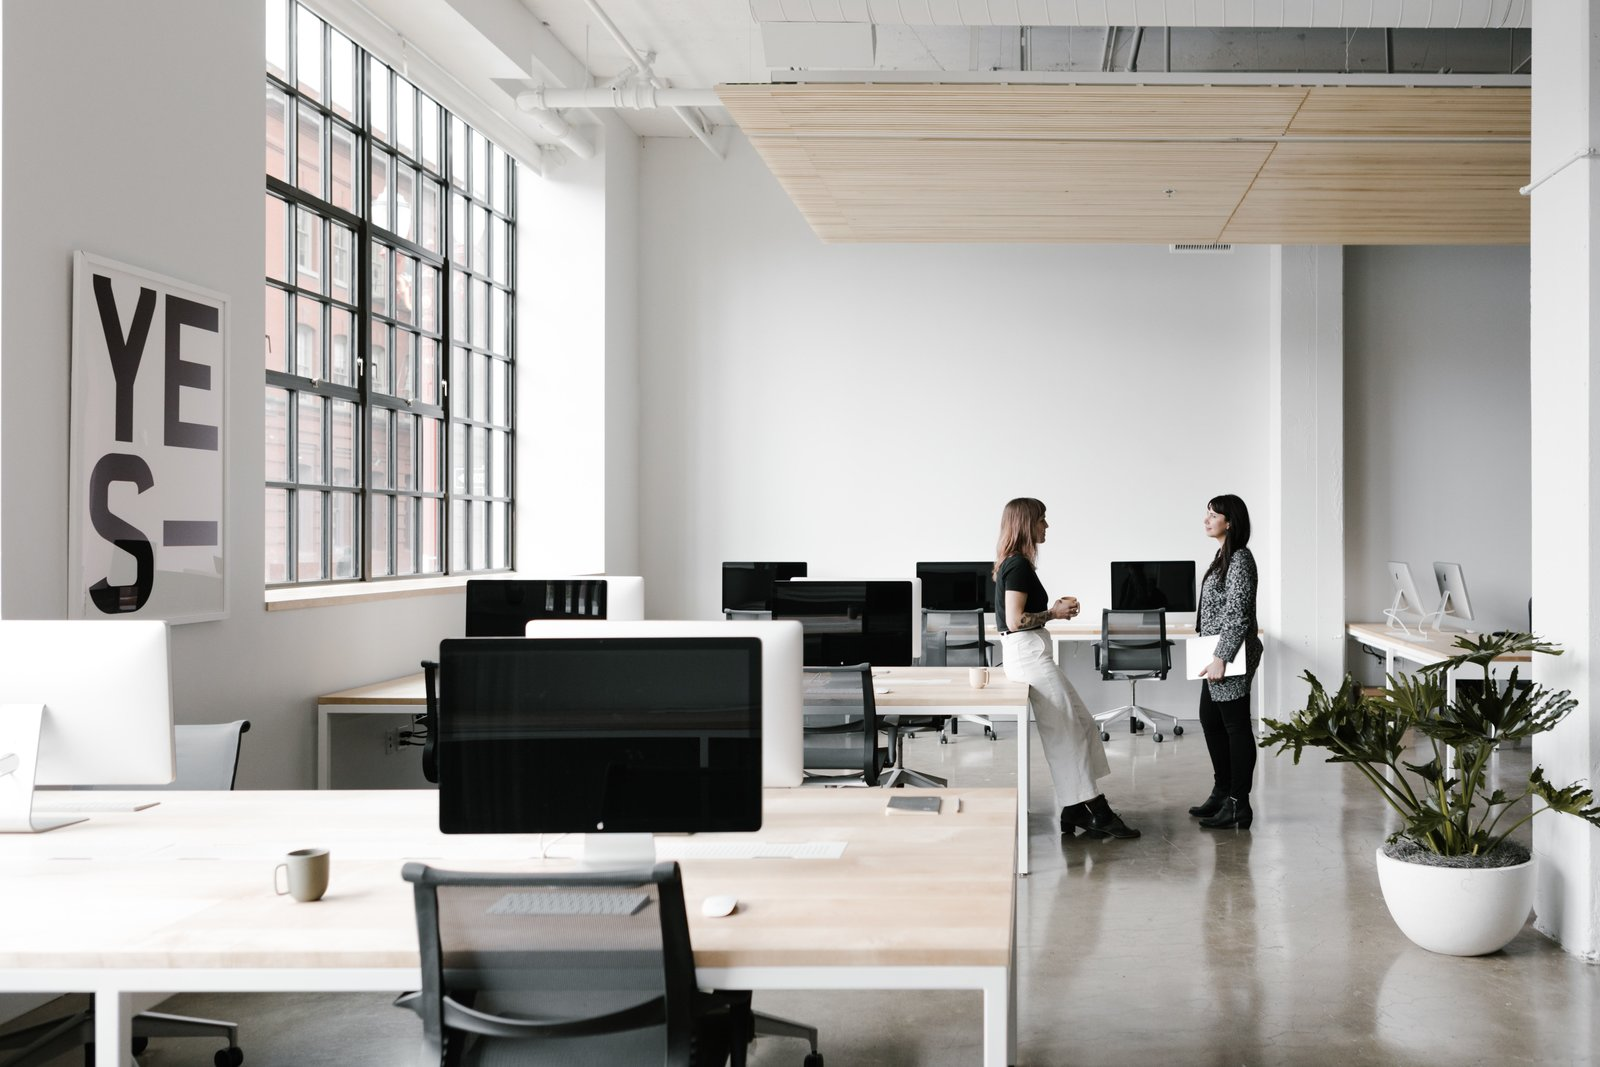 the-office-spaces-are-set-up-for-flexibility-custom-made-desks-include-hidden-troughs-for-wire-management-and-accessibility.jpg